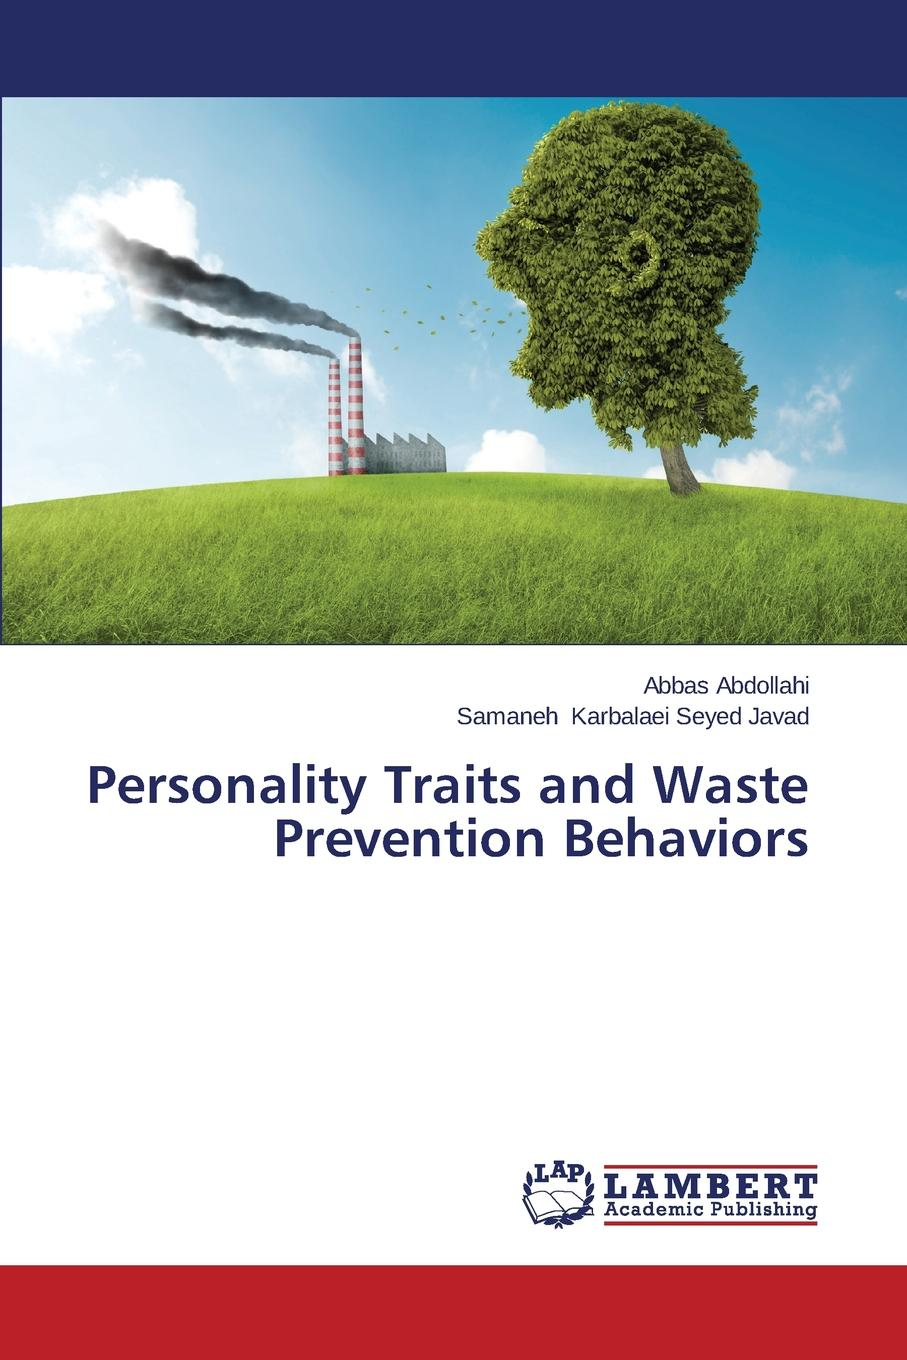 Abdollahi Abbas, Karbalaei Seyed Javad Samaneh Personality Traits and Waste Prevention Behaviors ashok kumar e waste rules and awareness